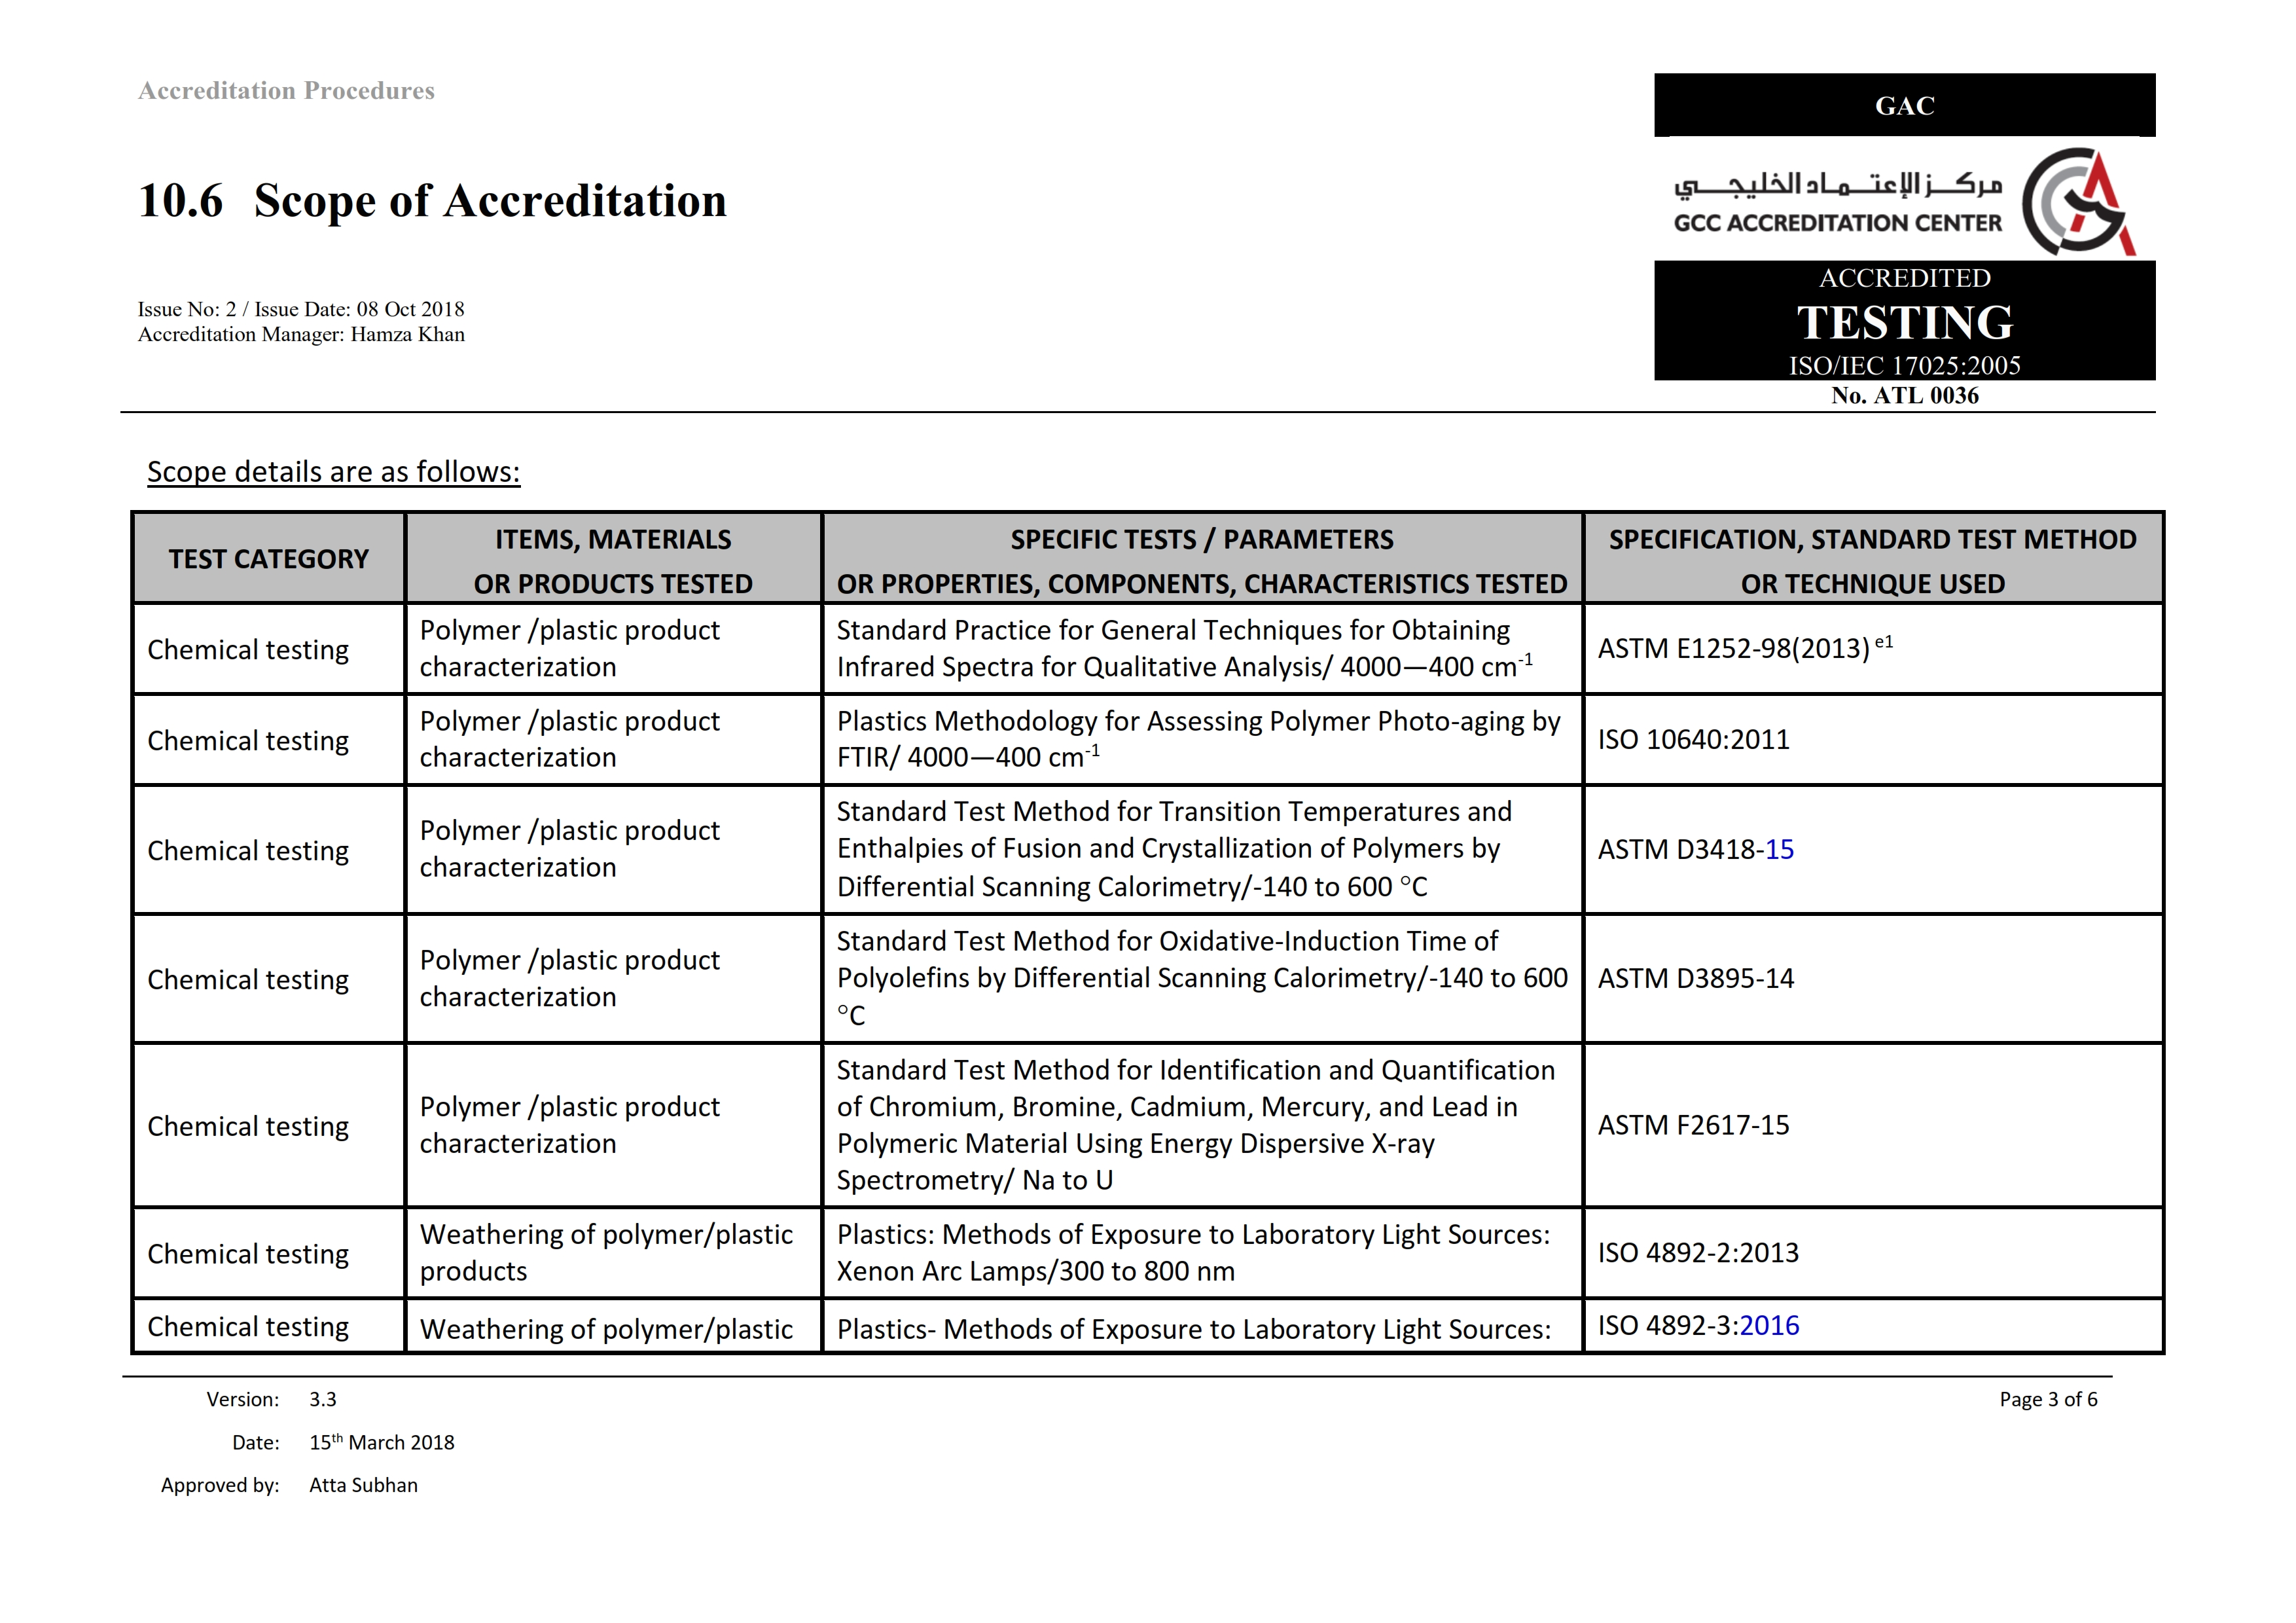 GAC 10.6 Scope of Accreditation- v.3.3 -Testing - EnerPlastic LLC_003